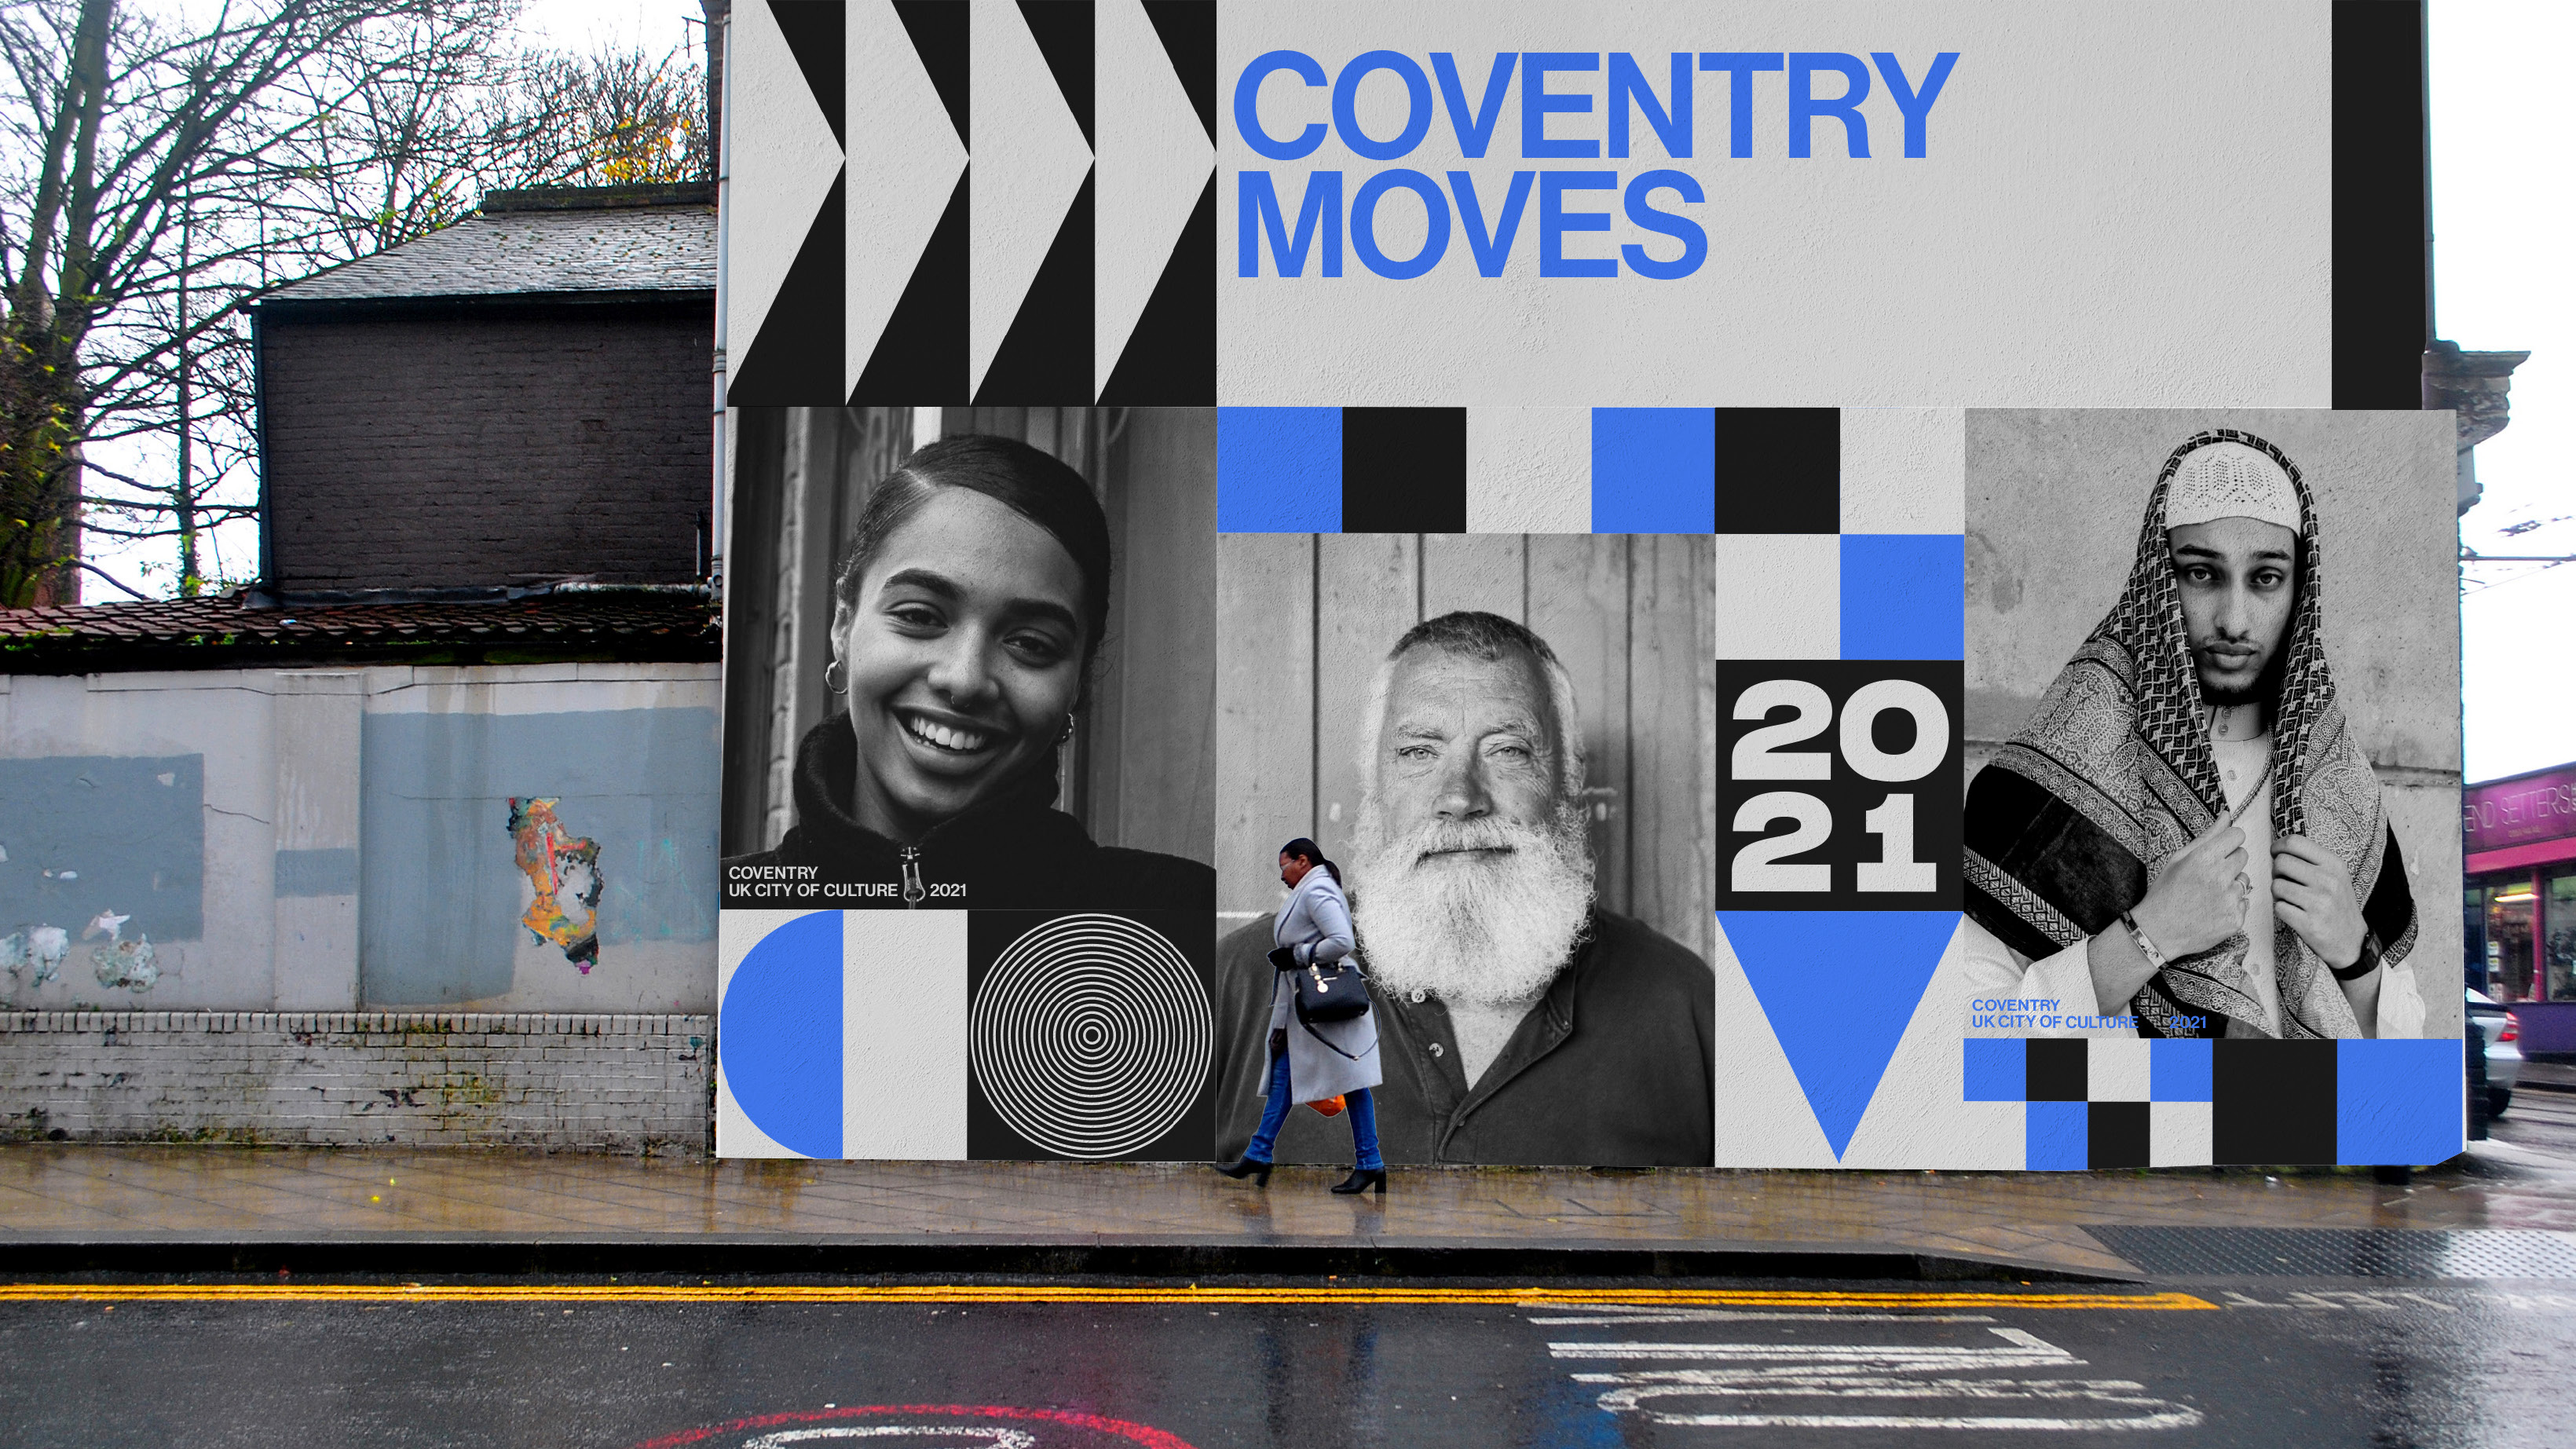 2021-02/coventry-moves-ooh-4